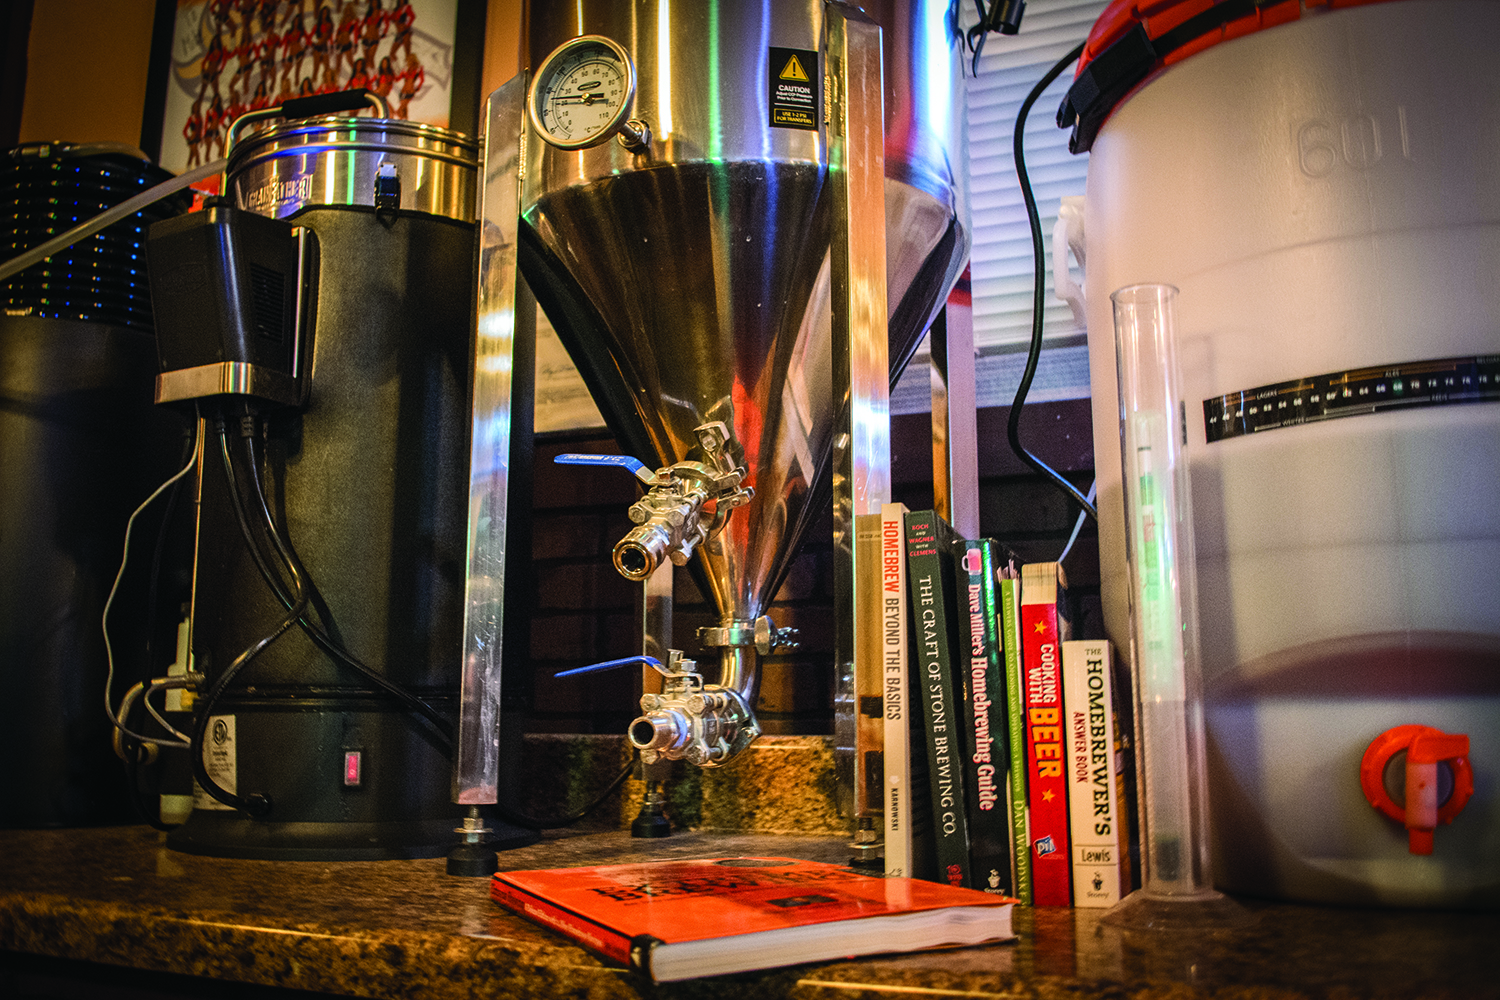 State of Homebrewing - Colorado pushes the envelope on